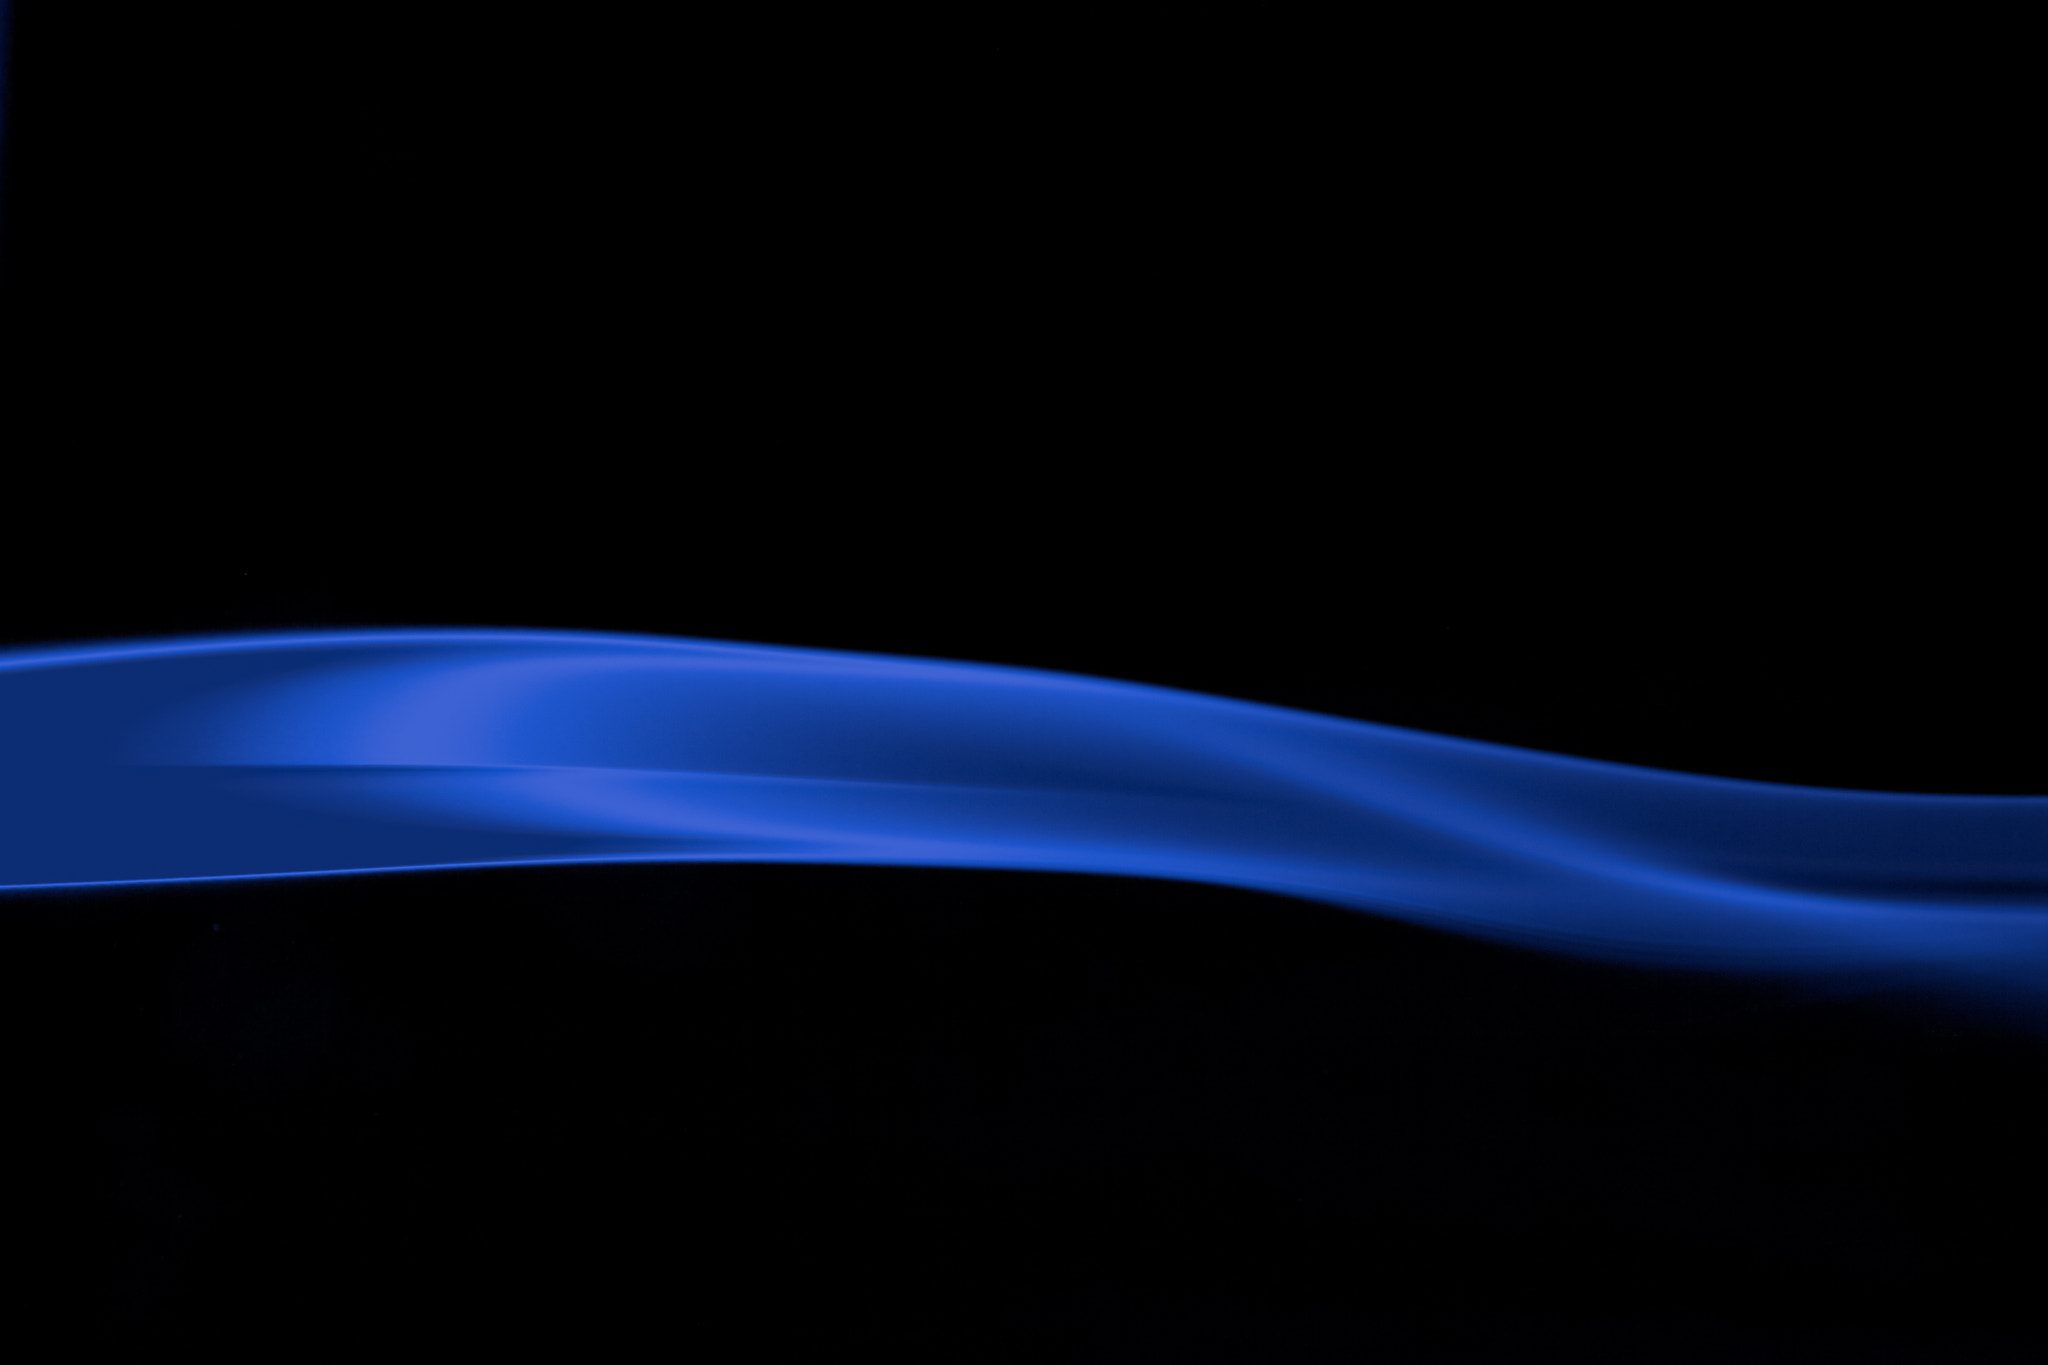 Photograph Blue flow invert 3/4 by Dean Grzanic on 500px